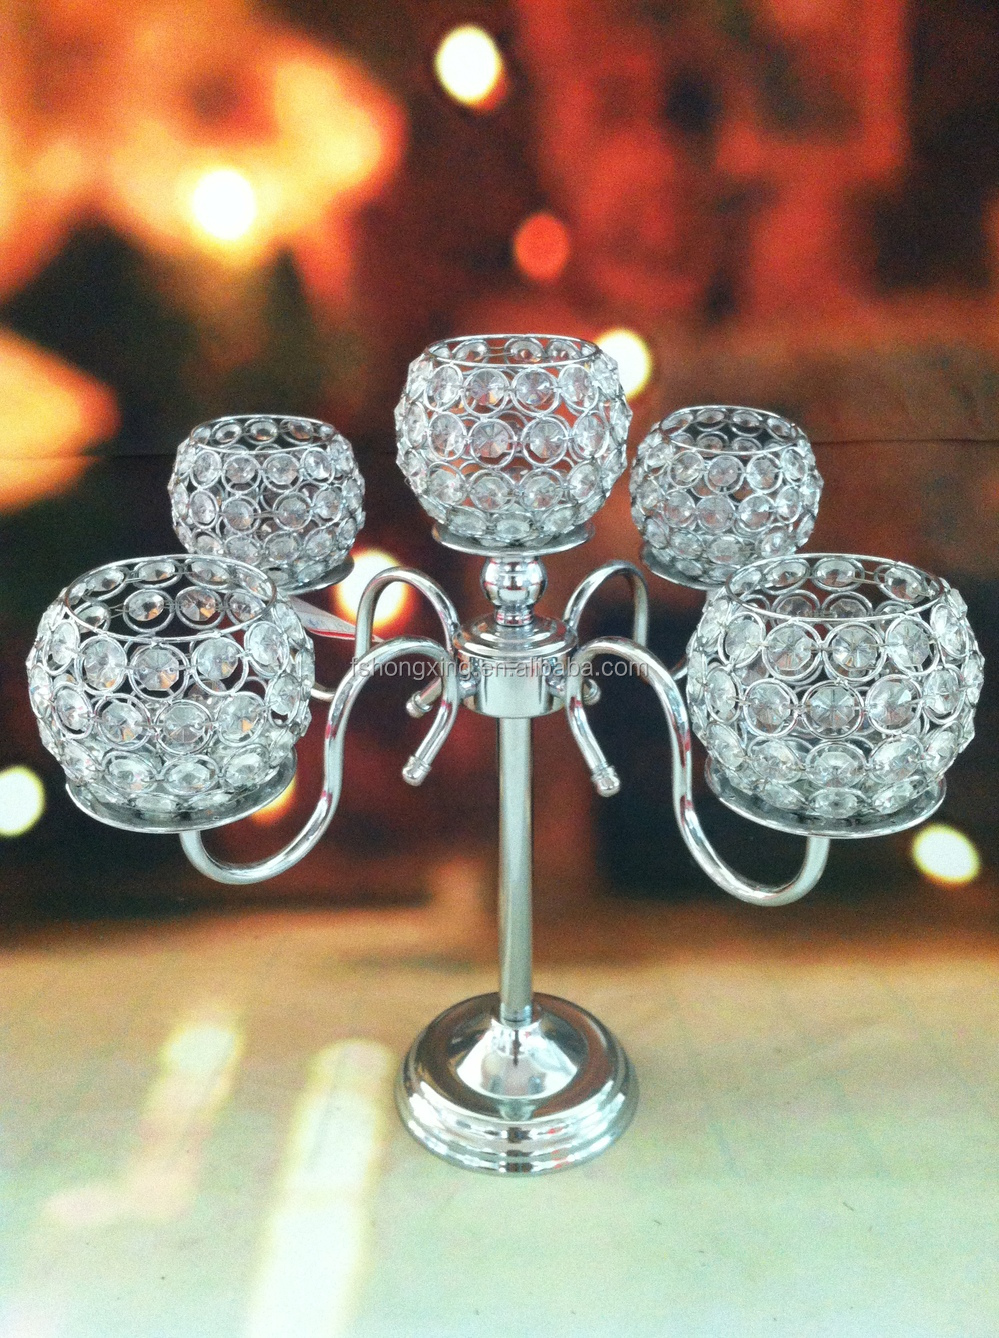 5arms Tall Wedding Crystal Globe Candelabra CenterpieceCandle Holder For Wedding Table